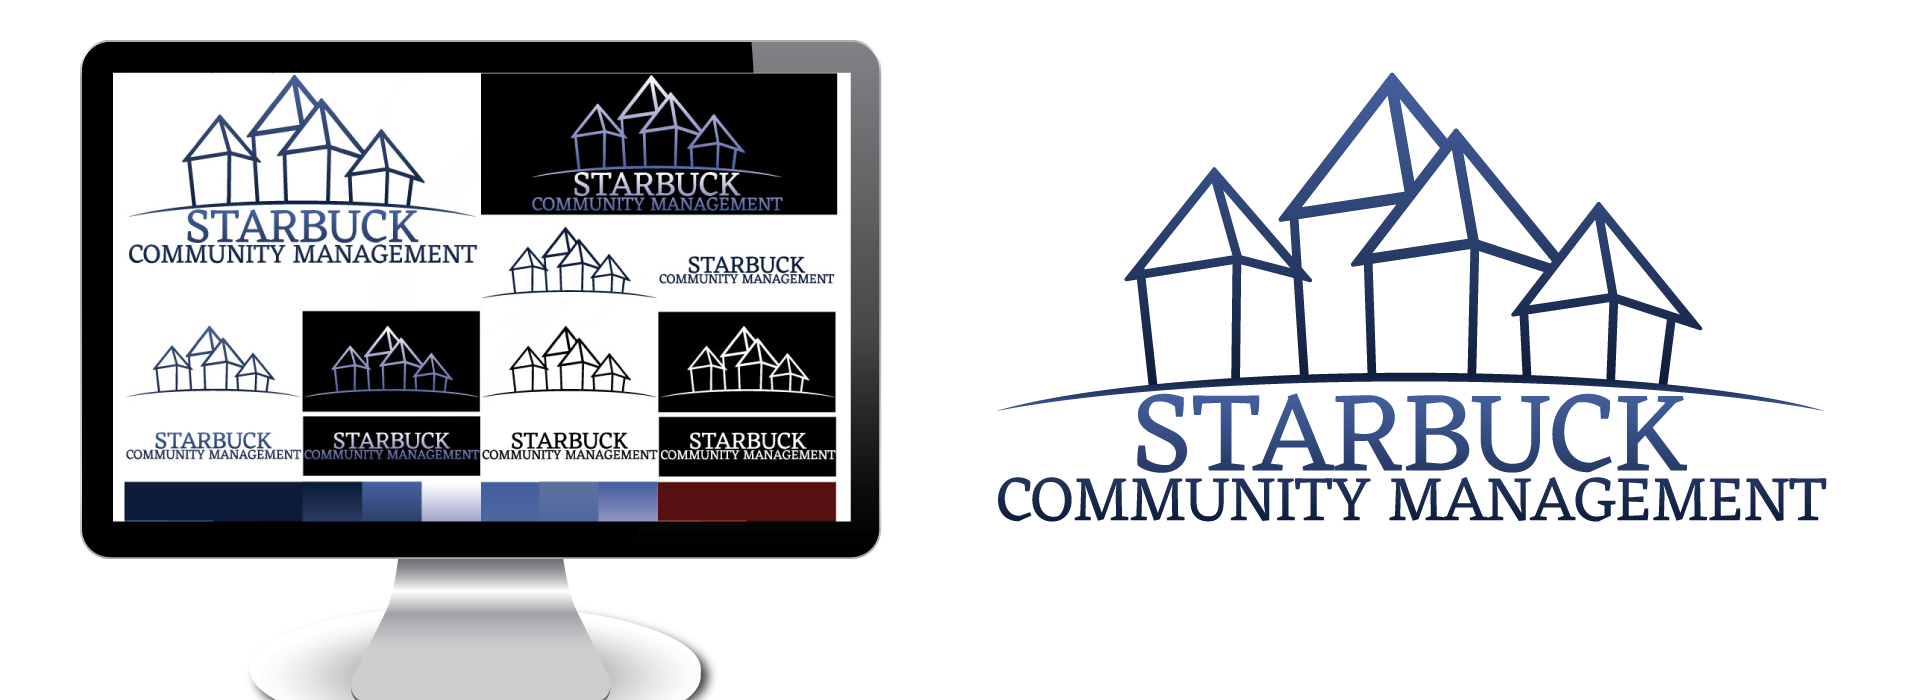 Screen Captures of example project: Branding and Logo Design - Starbuck Community Management